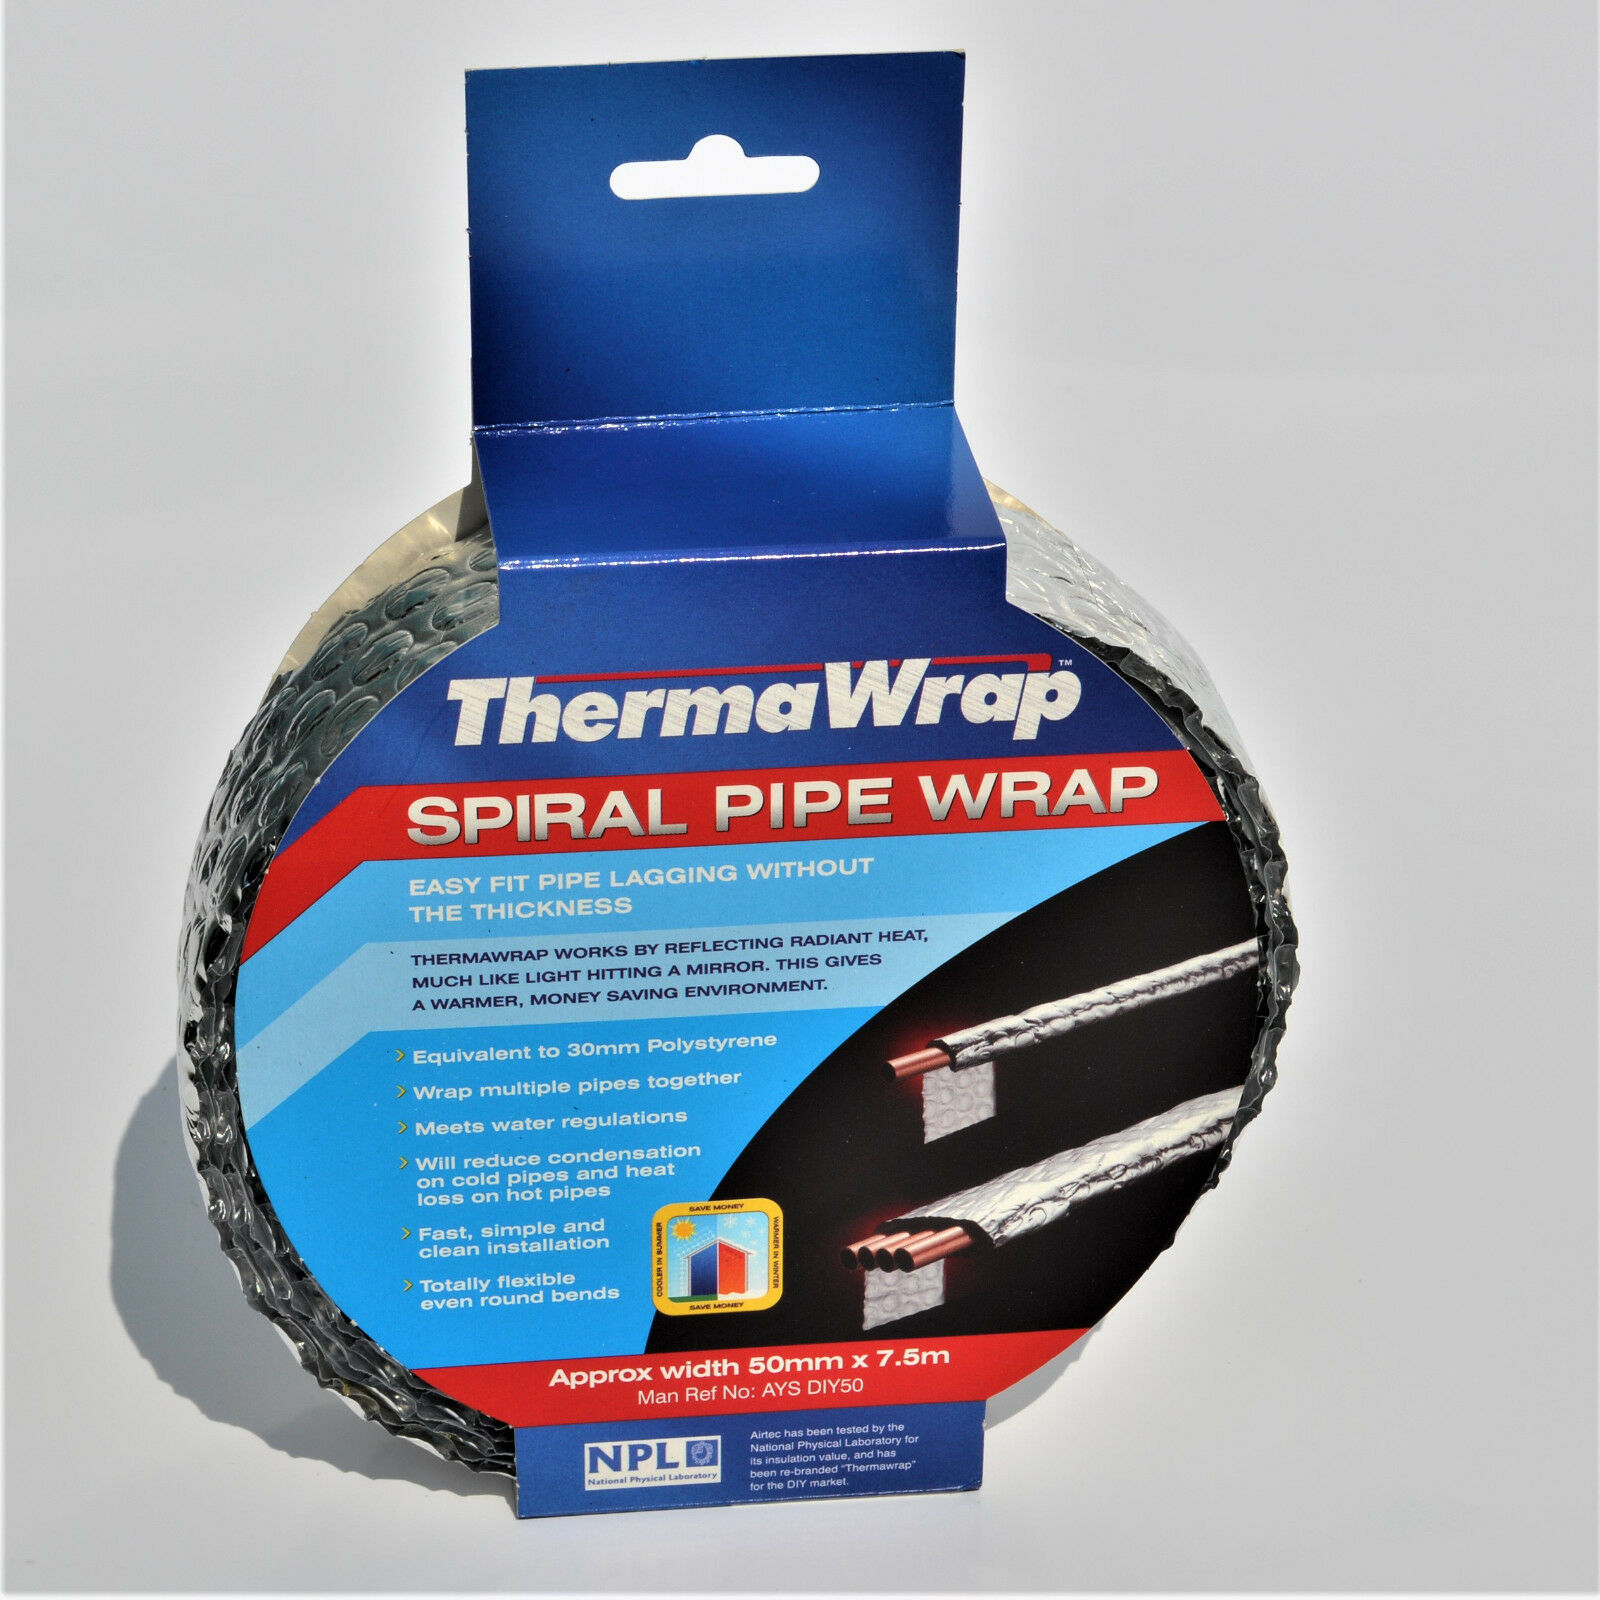 THERMAWRAP PIPE WRAP for pipe lagging 7.5m x 50mm wide - 4 ROLLS ...